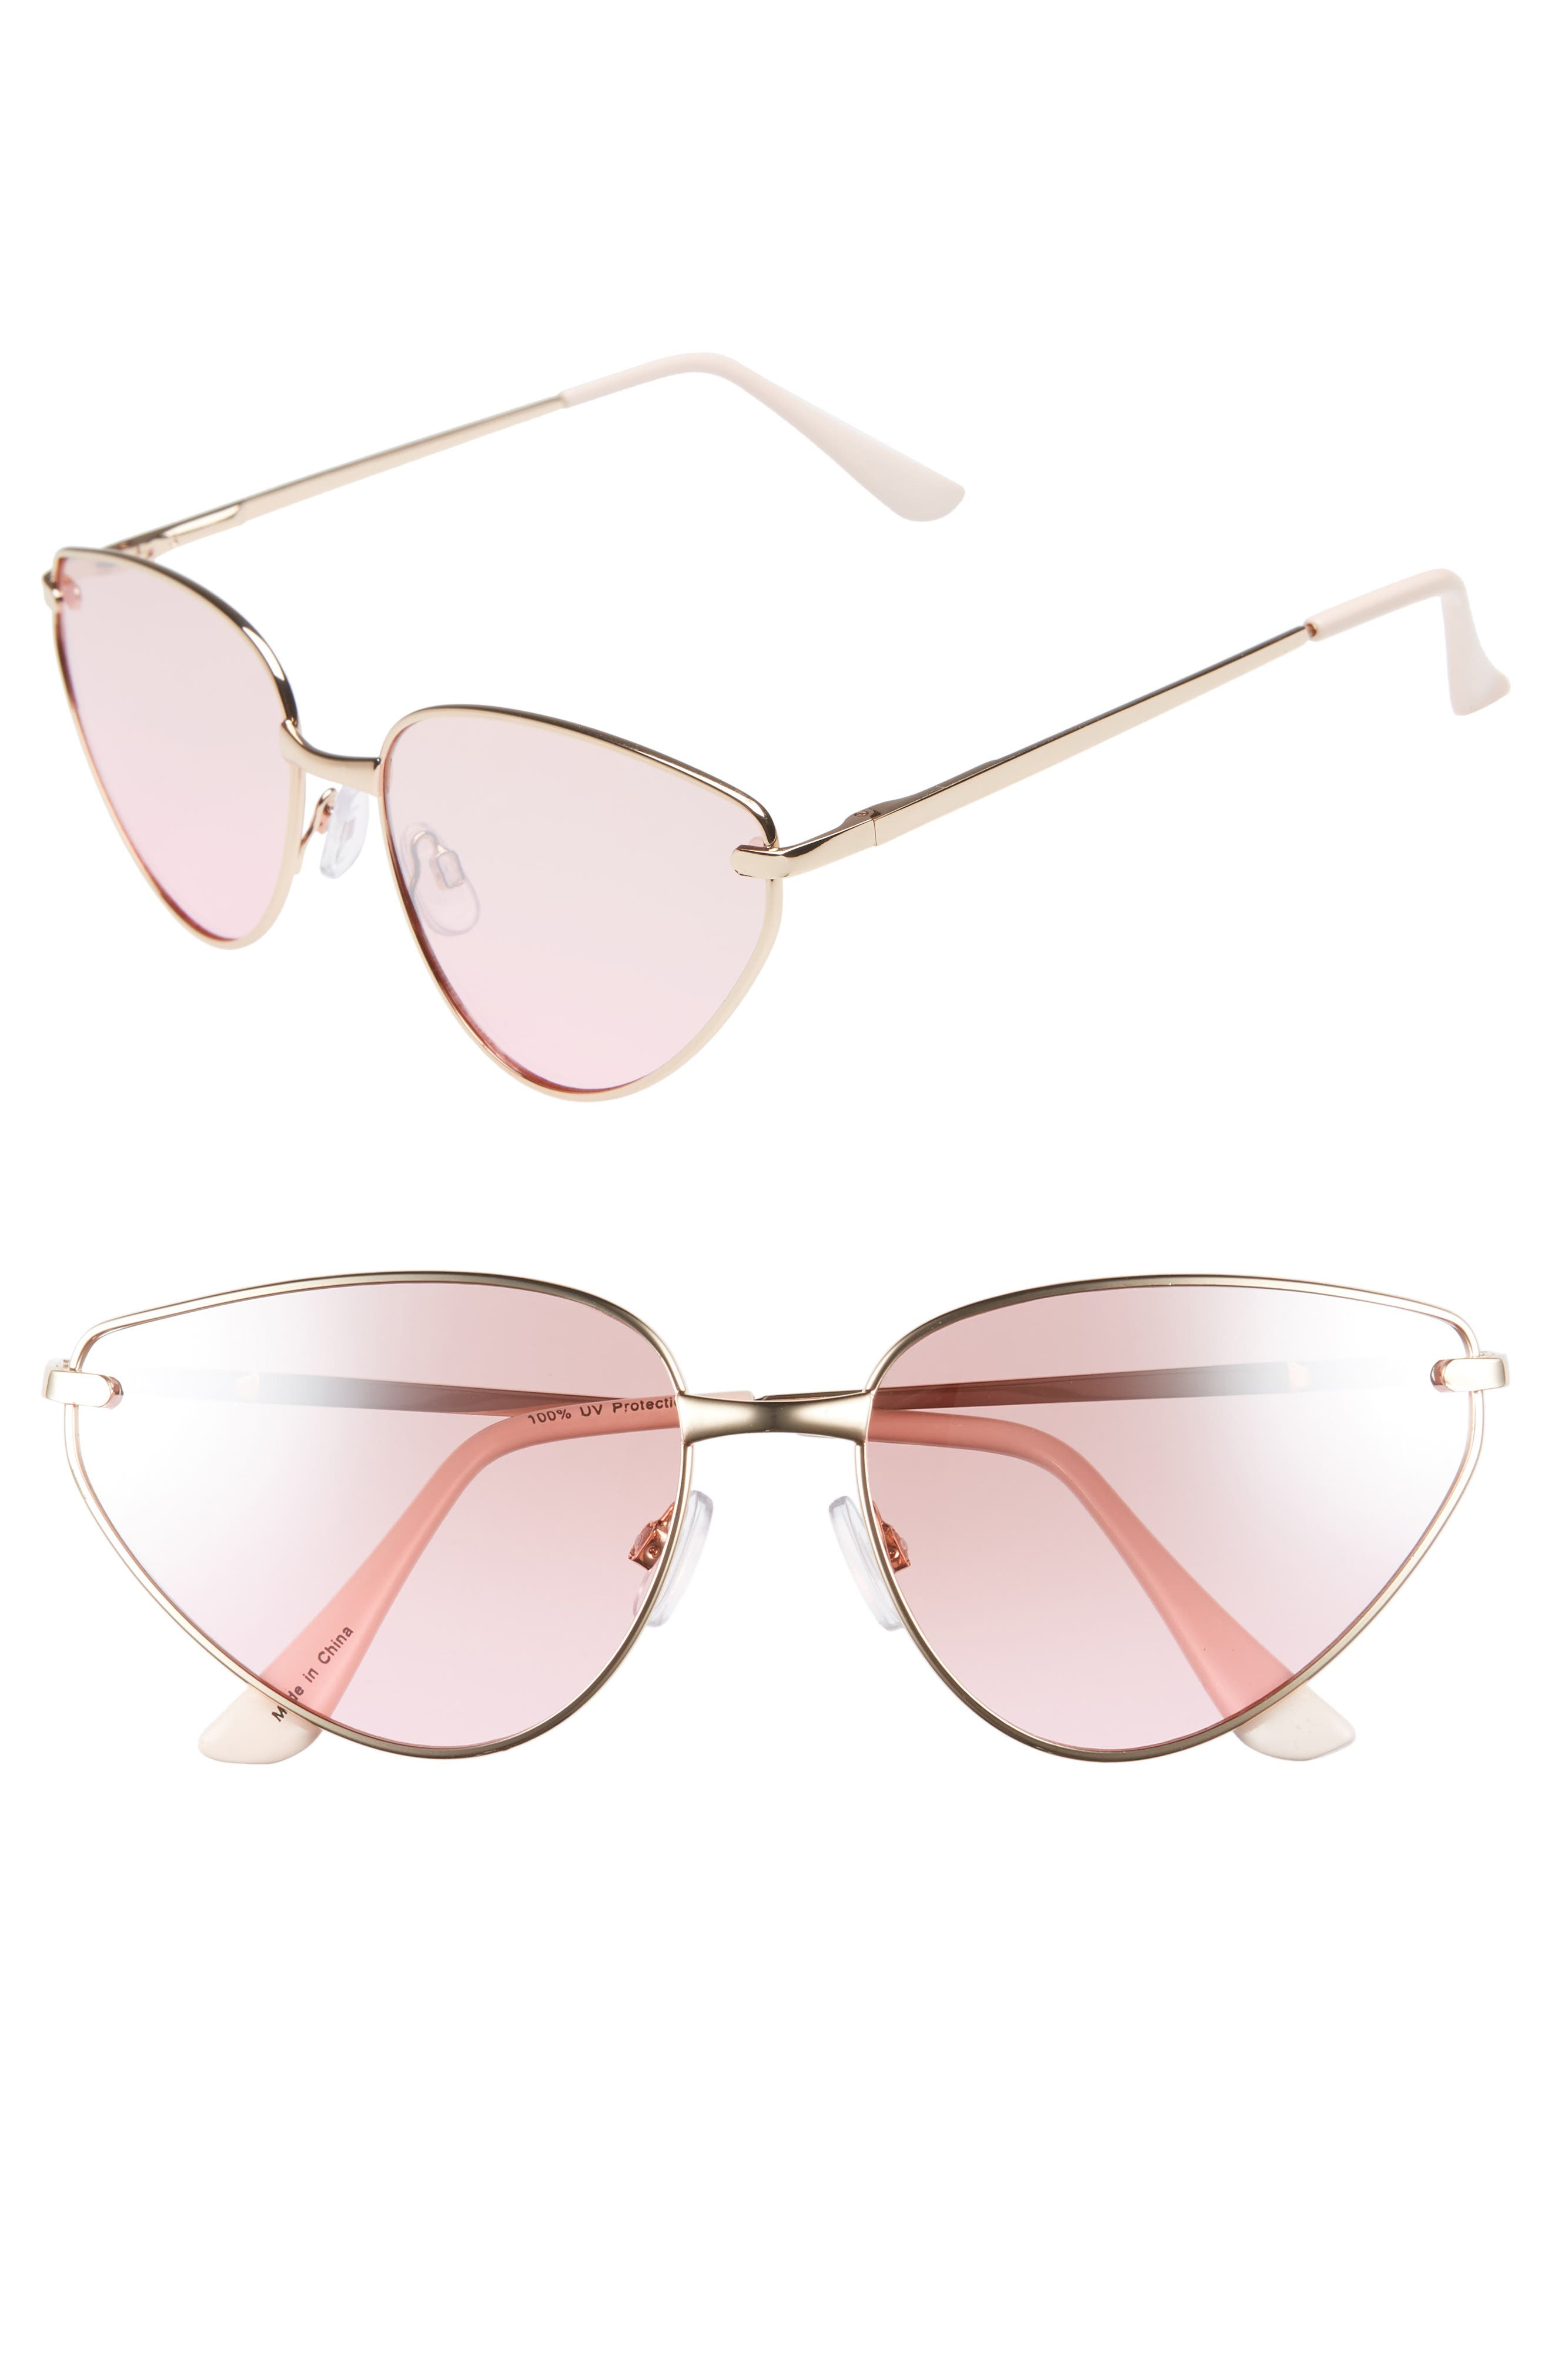 60mm Exaggerated Cat Eye Sunglasses,                         Main,                         color, 710